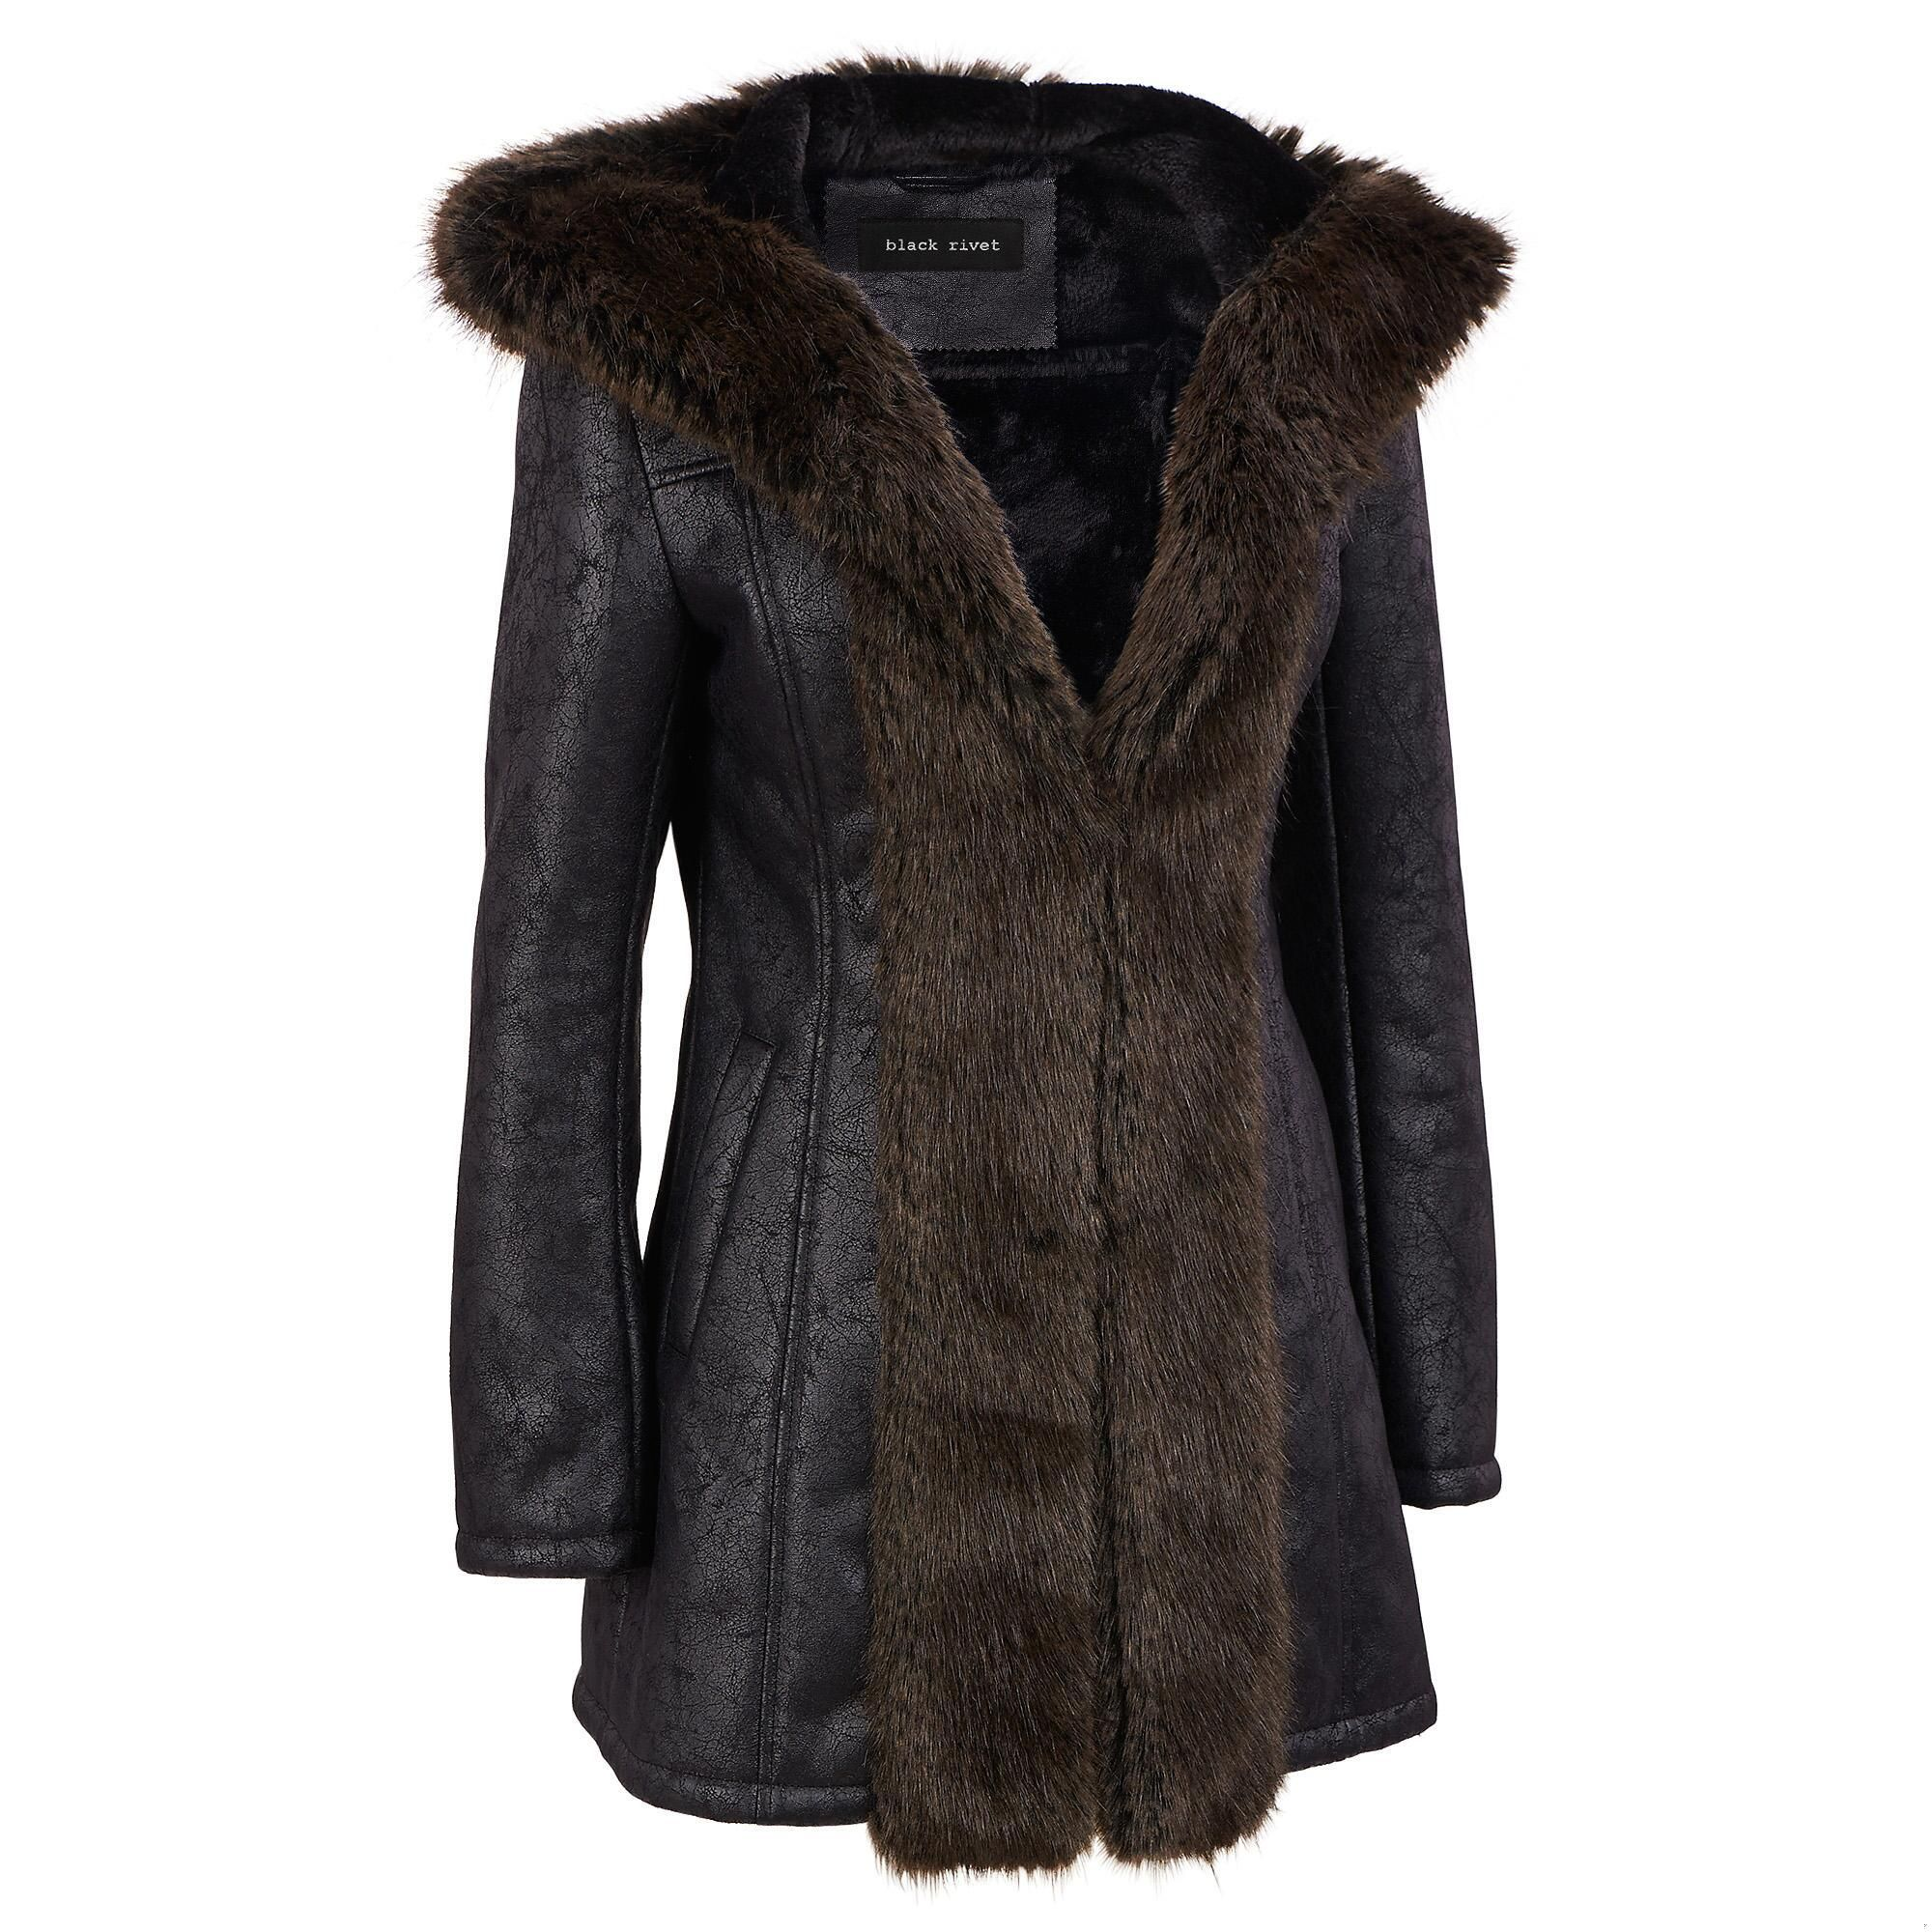 Black Rivet Hooded Distressed FauxLeather Coat w/FauxFur